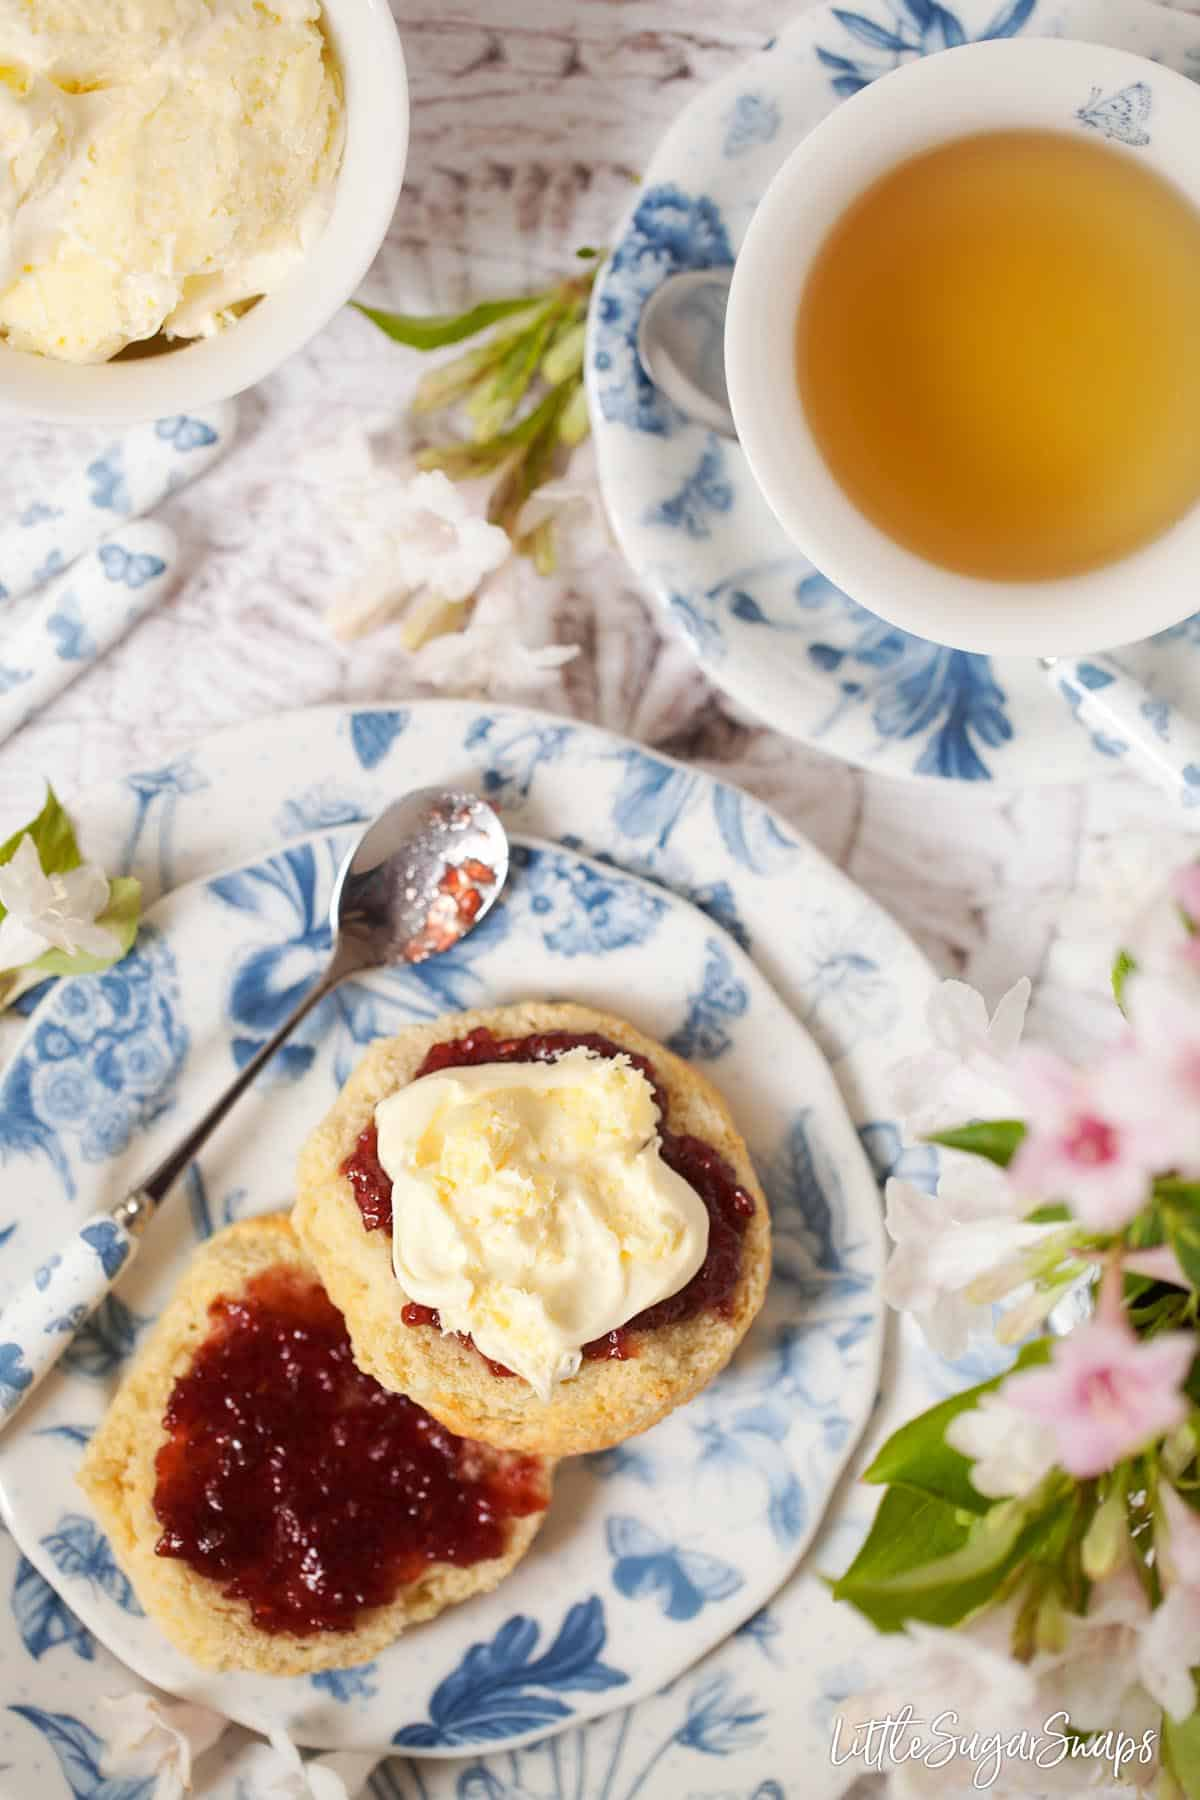 Overhead view of a scone topped with jam and clotted cream, served as afternoon tea